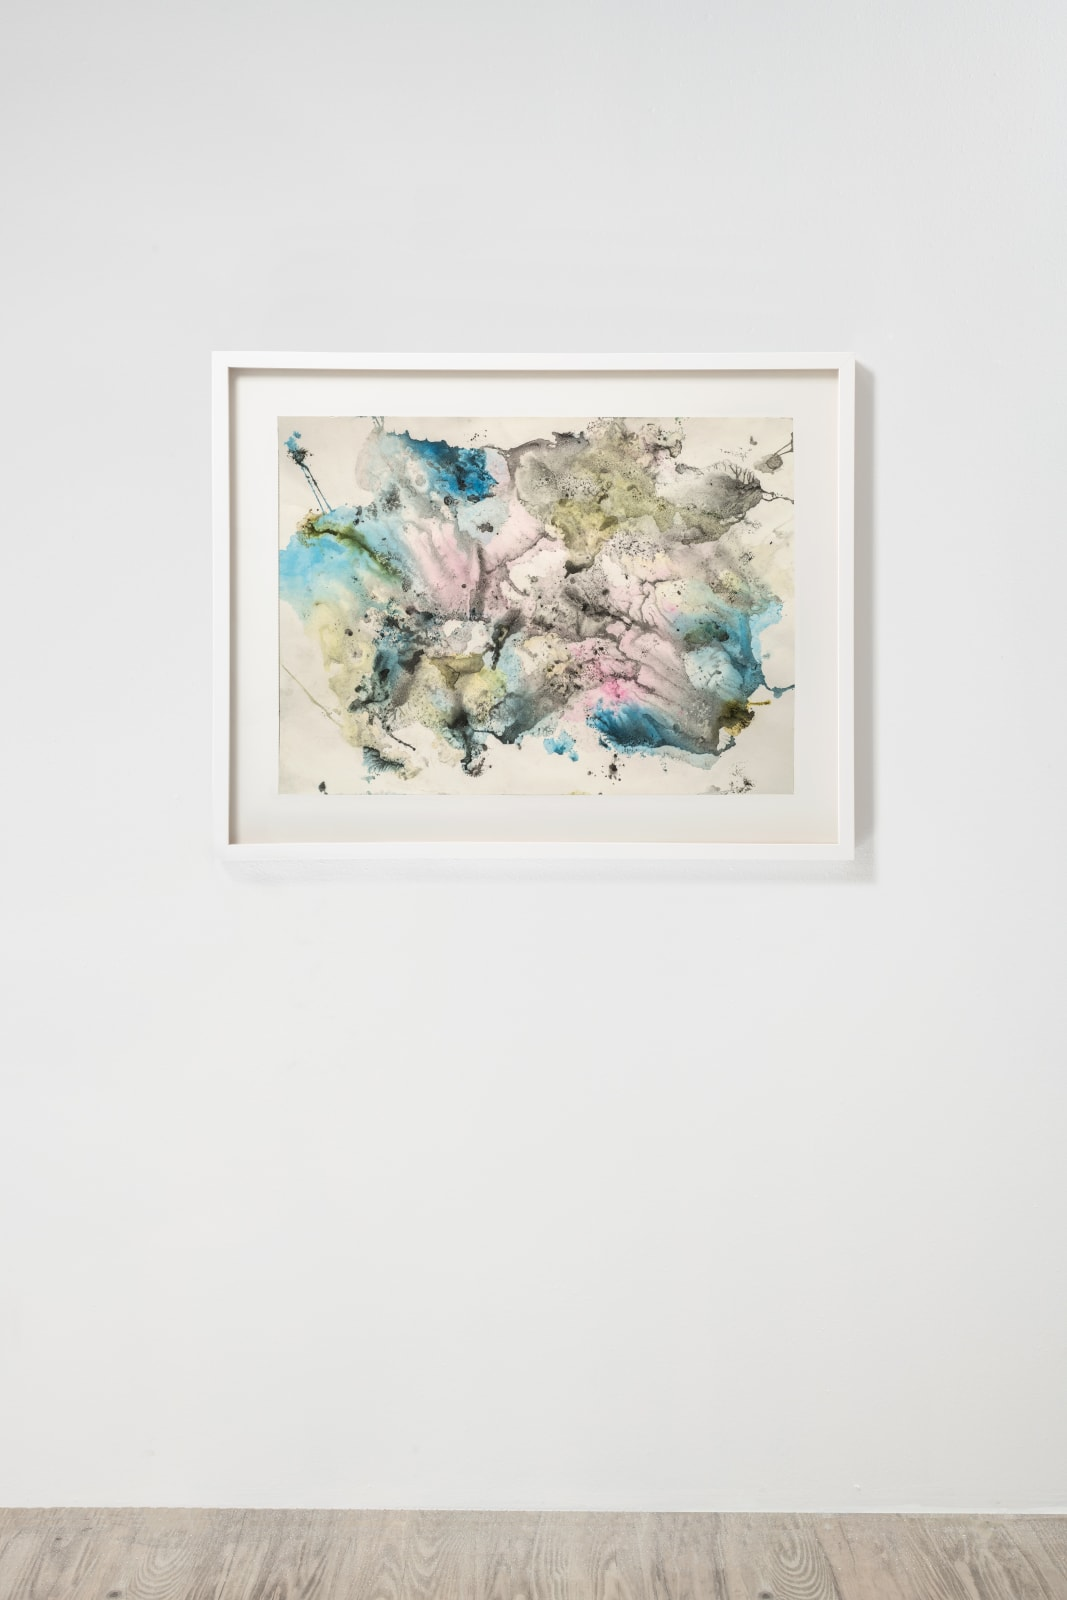 Michele Colburn Untitled, 2020 Gunpowder and watercolors on Fabriano paper 55.9 x 76.2 cm, 22 x 30 in. (Frame not included) Photo: Lee Stalsworth